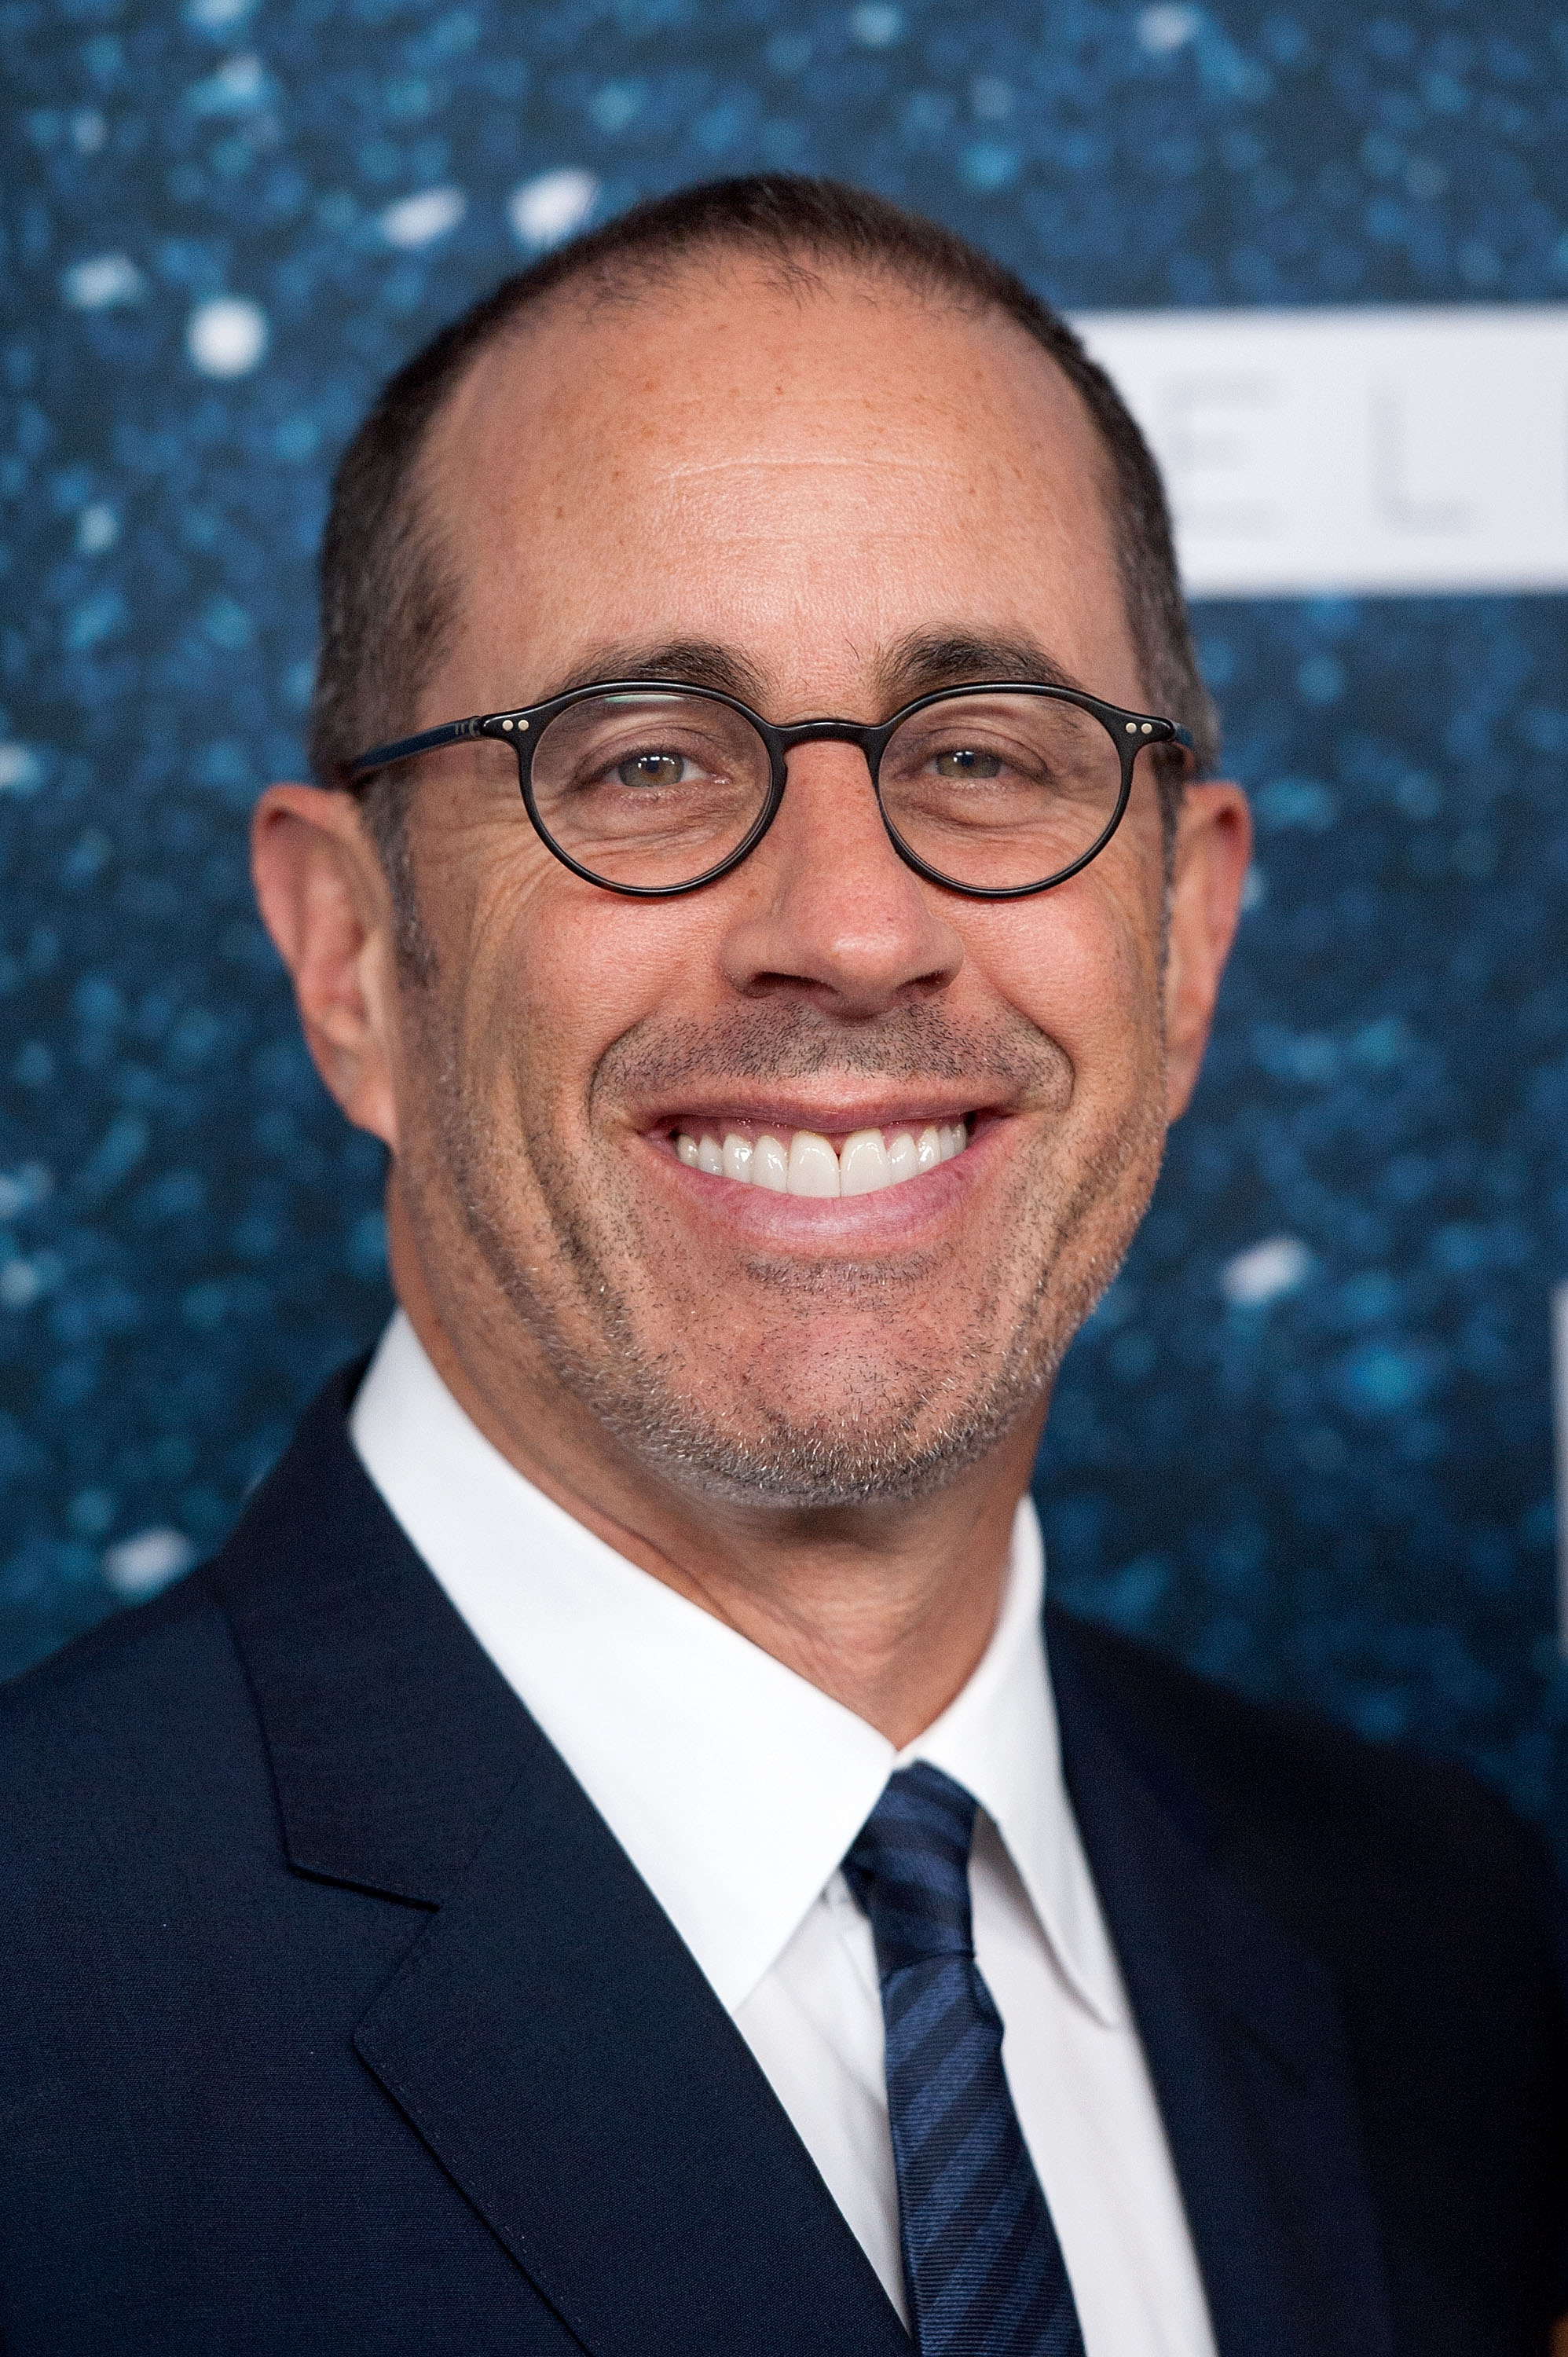 Comedian Jerry Seinfeld - age: 63